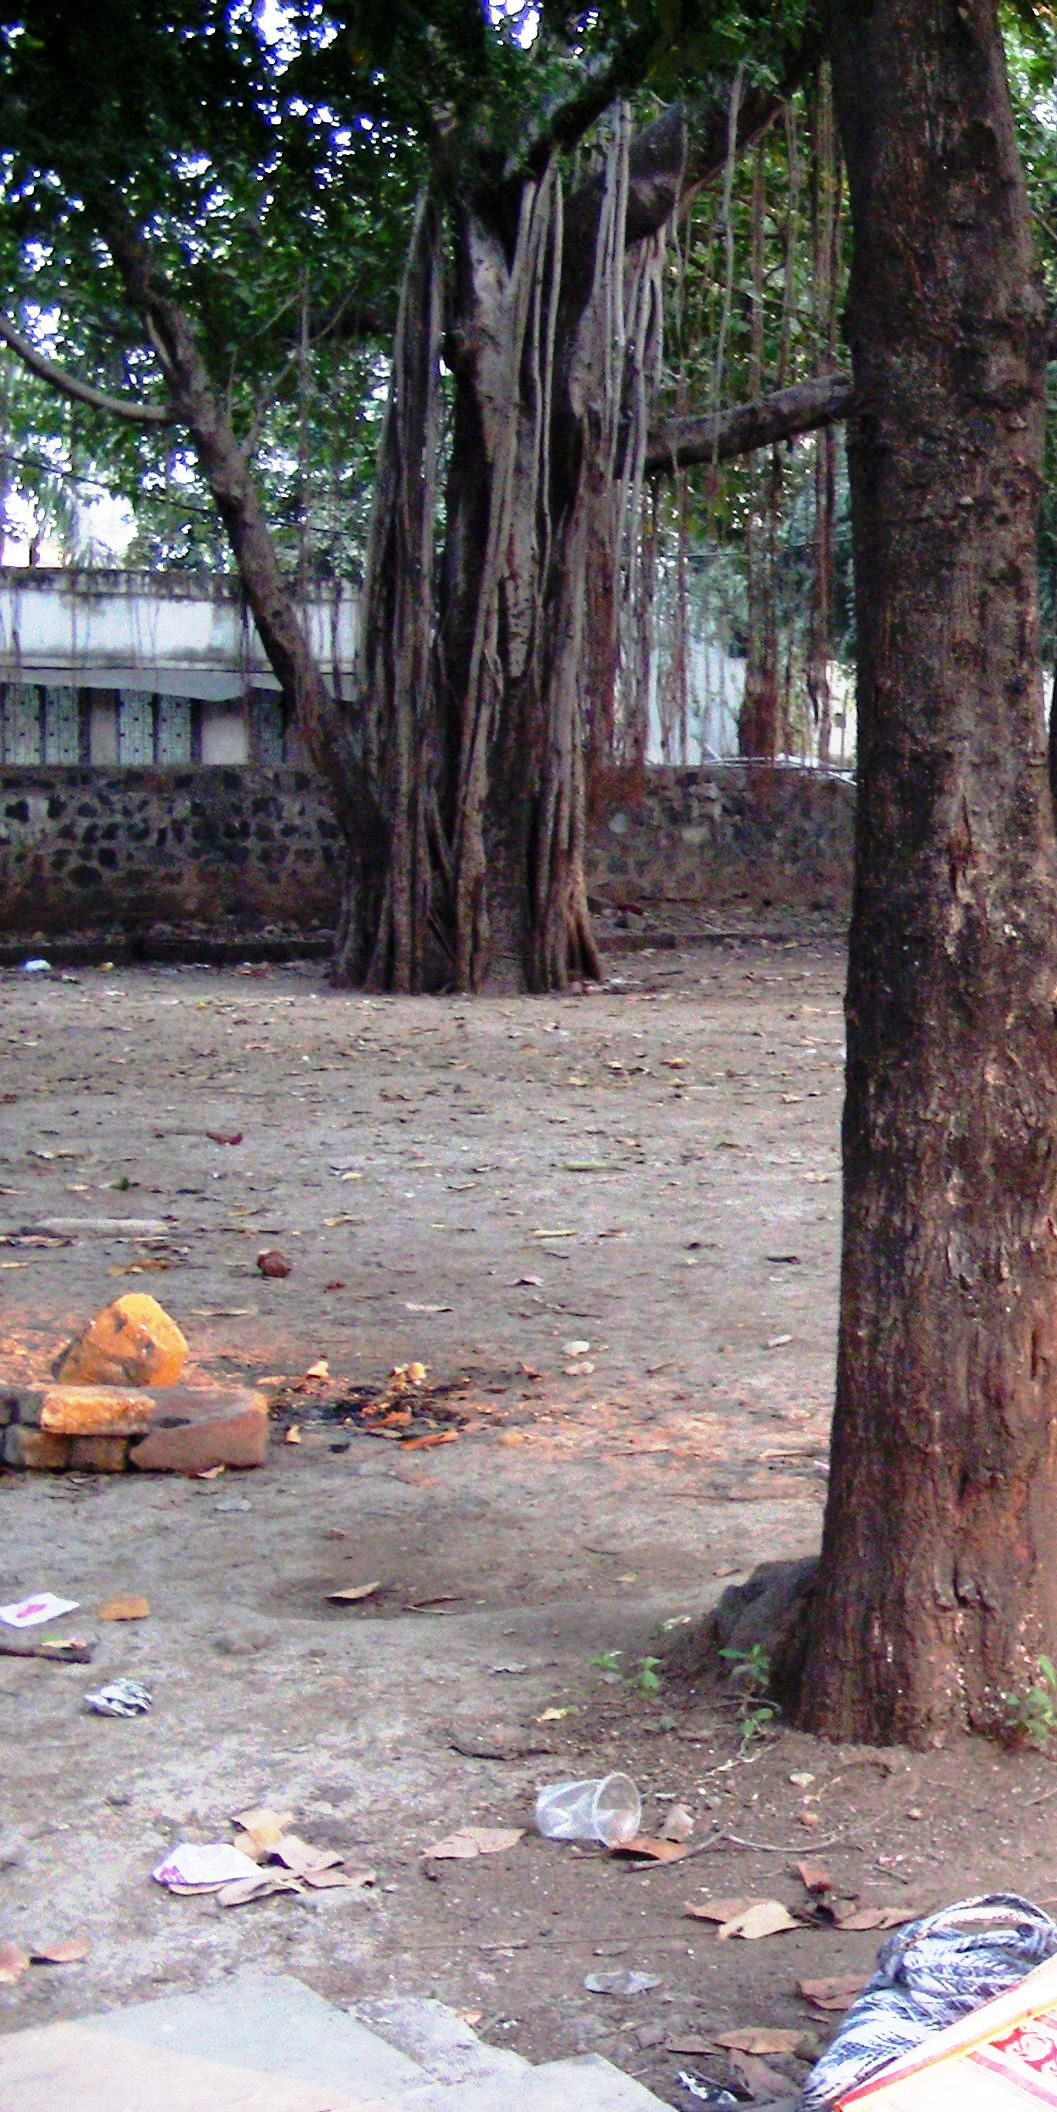 Many such Banyan trees have witnessed the passage of time at the ancient Shiv temple in Telankhedi, Nagpur